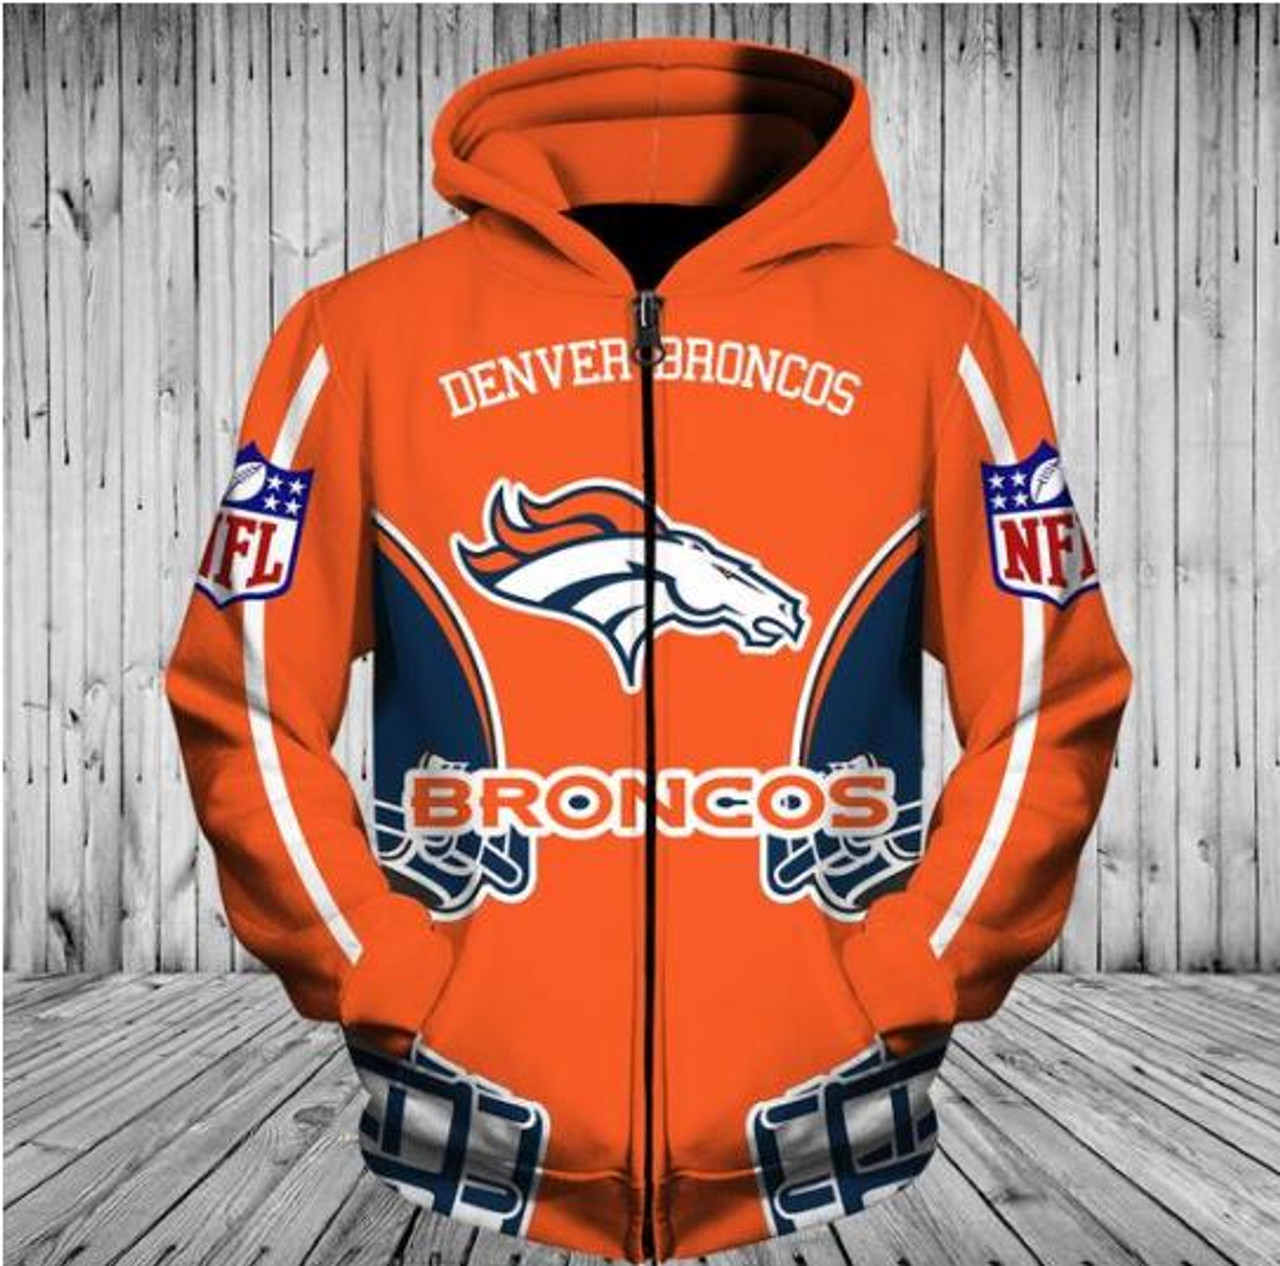 official photos ad601 7504d **(OFFICIALLY-LICENSED-N.F.L.DENVER-BRONCOS-TEAM-ZIPPERED-HOODIES/NICE-CUSTOM-3D-GRAPHIC-PRINTED-DOUBLE-SIDED-ALL-OVER-OFFICIAL-BRONCOS-LOGOS,IN-BRONC...